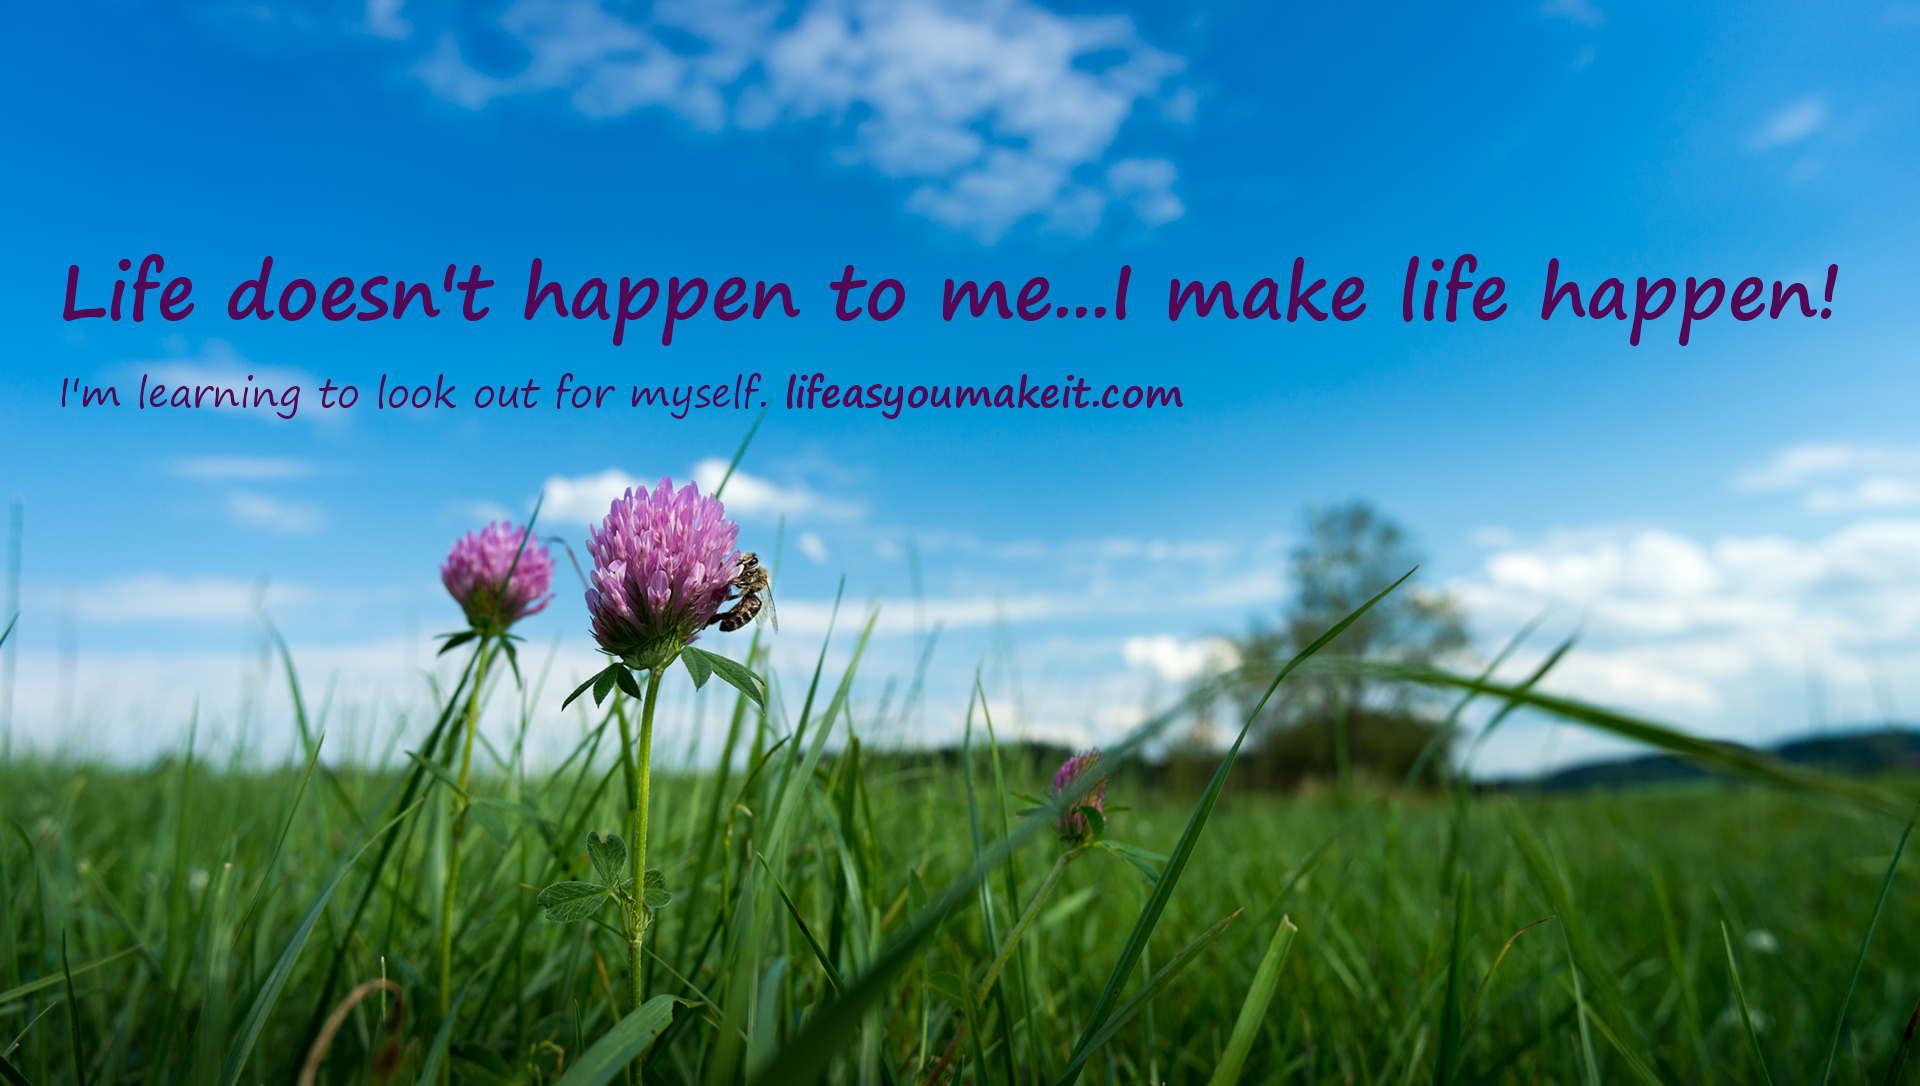 Life doesn't happen to me. I make life happen. I'm learning to look out for myself at lifeasyoumakeit.com